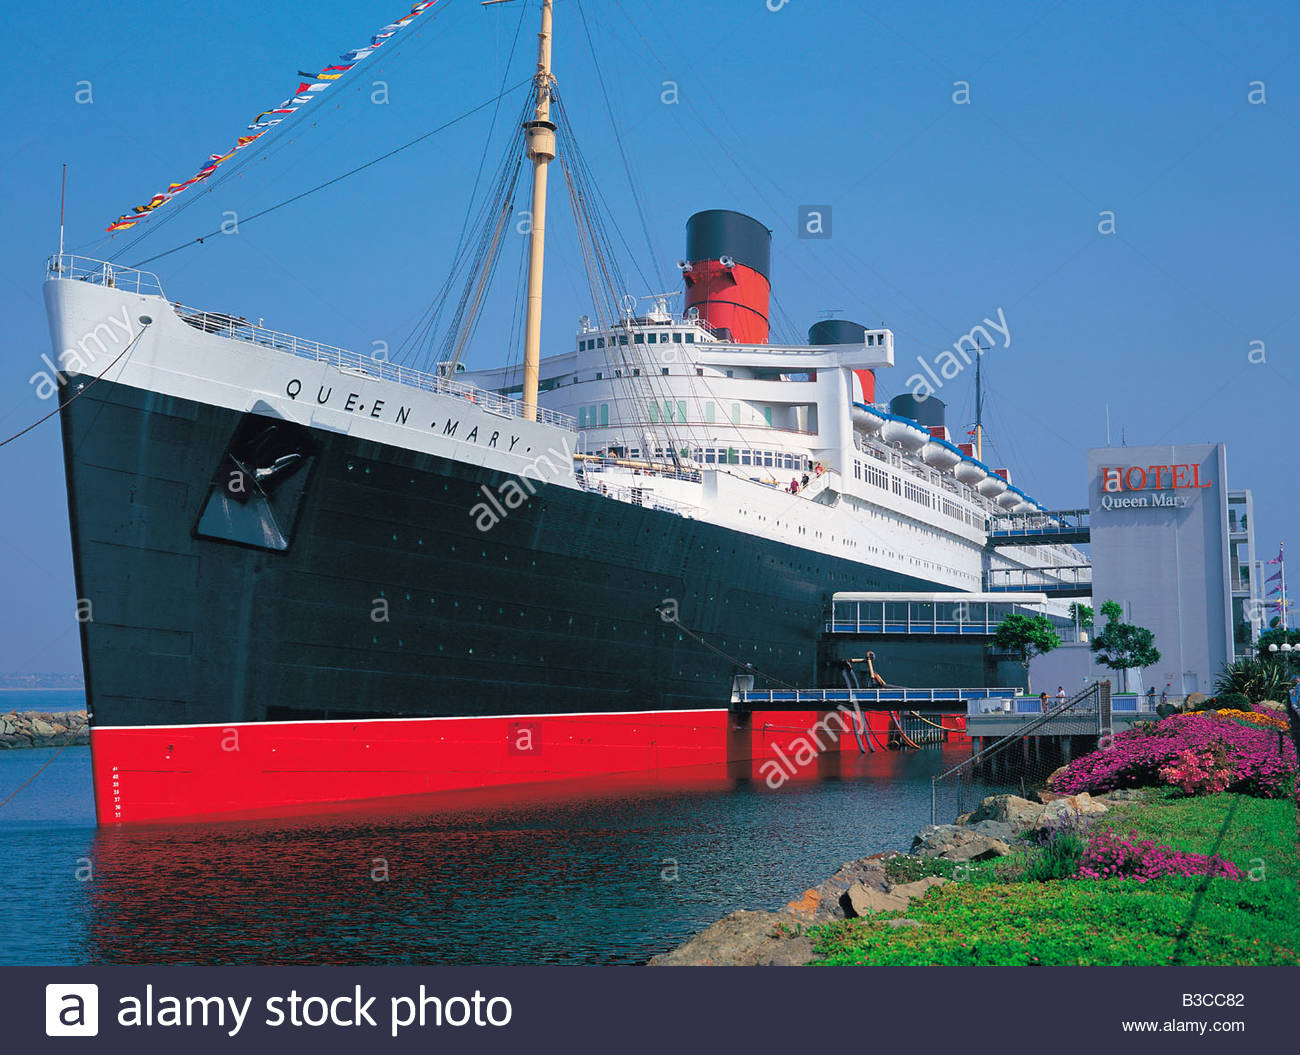 Richard J. Riordan Central Library Los Angeles, Queen Mary ship floating hotel in Los Angeles, California, USA ...